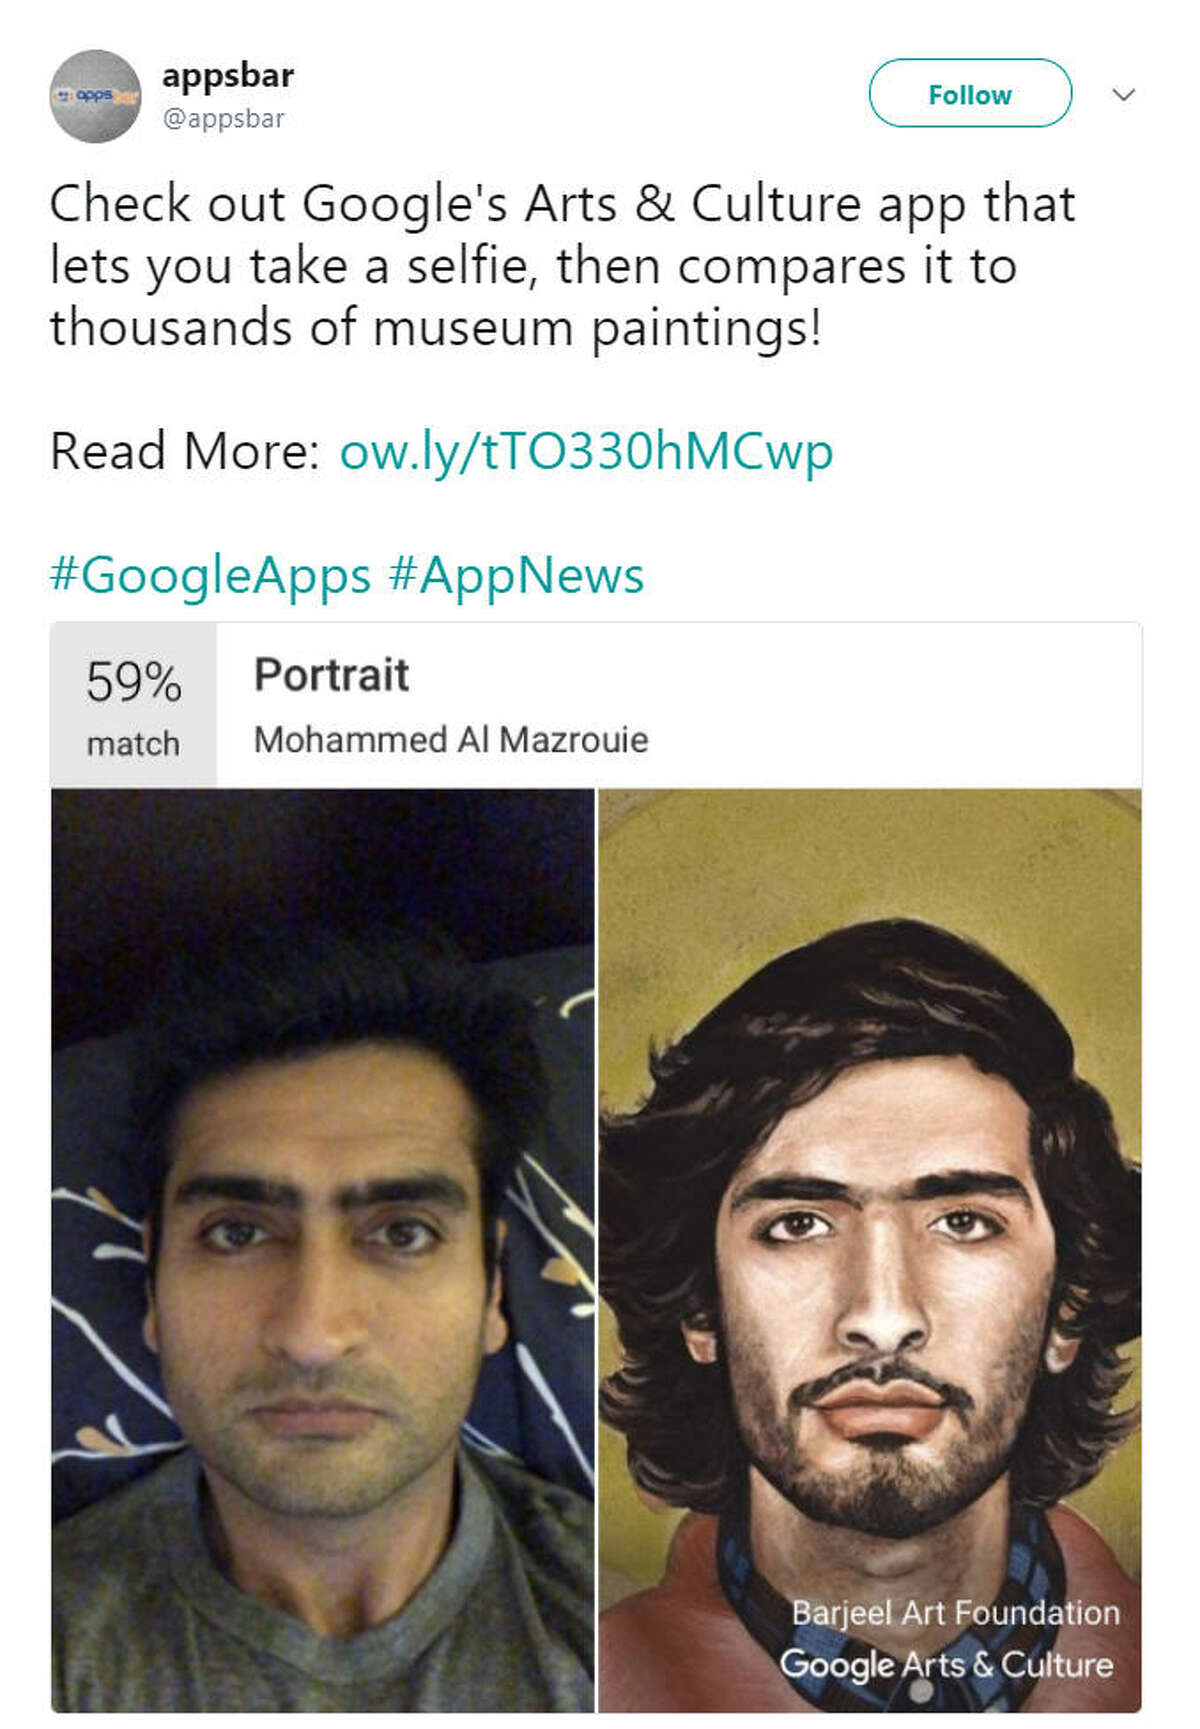 The Google Arts & Culture app has gone viral thanks to a new art selfie feature that has left Texans out in the cold.